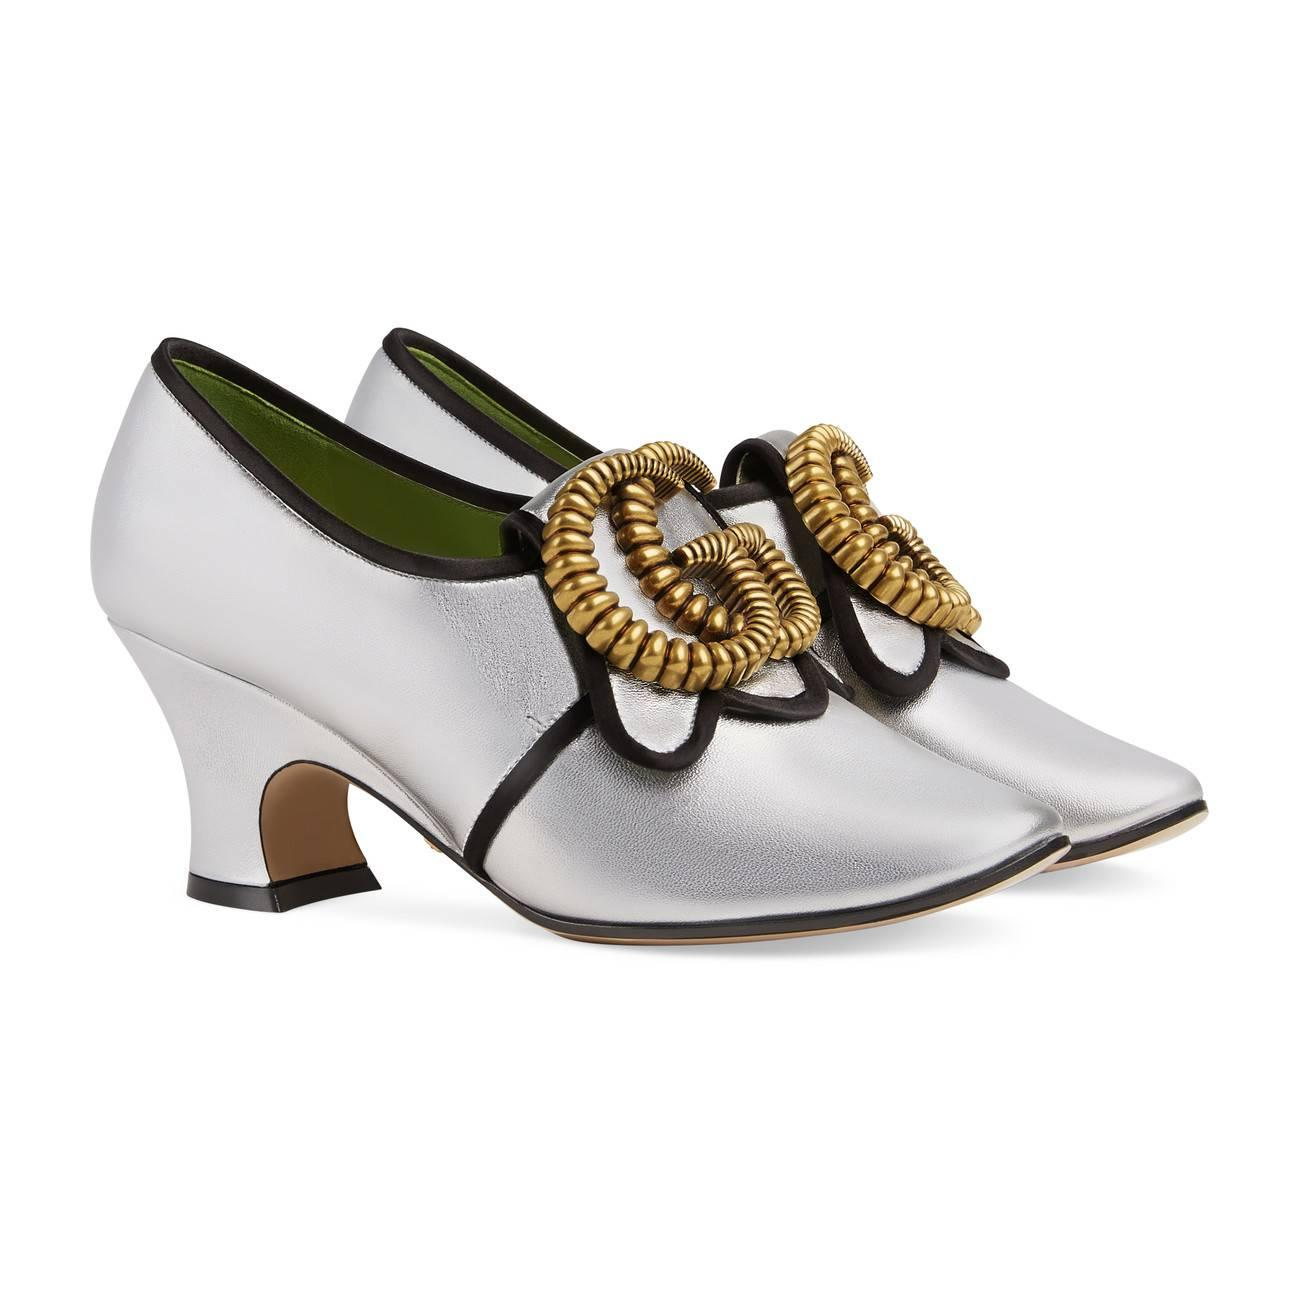 df28b41930c Gucci - Metallic Leather Mid-heel Pump With Double G - Lyst. View fullscreen